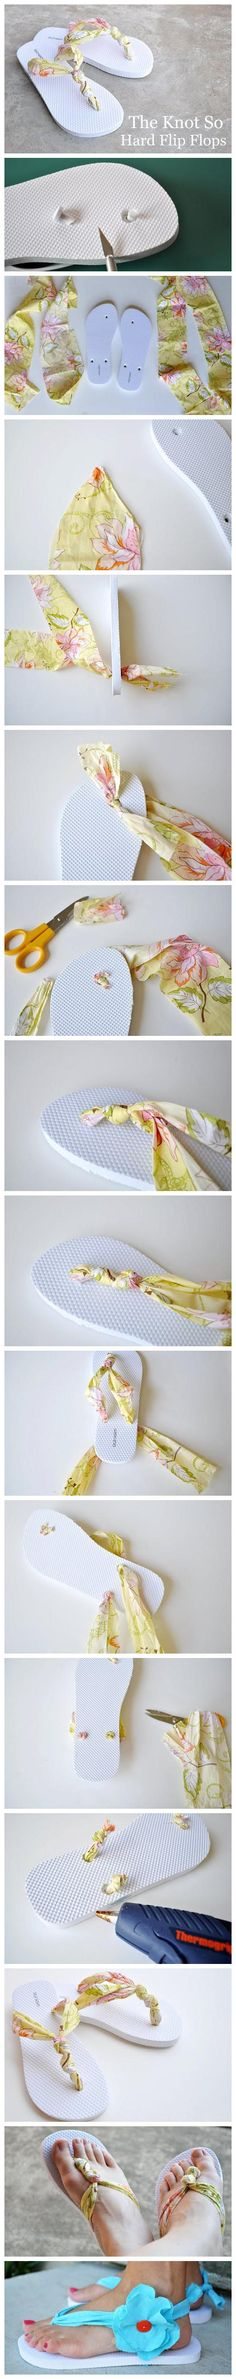 Change out flip flop straps for fabric.